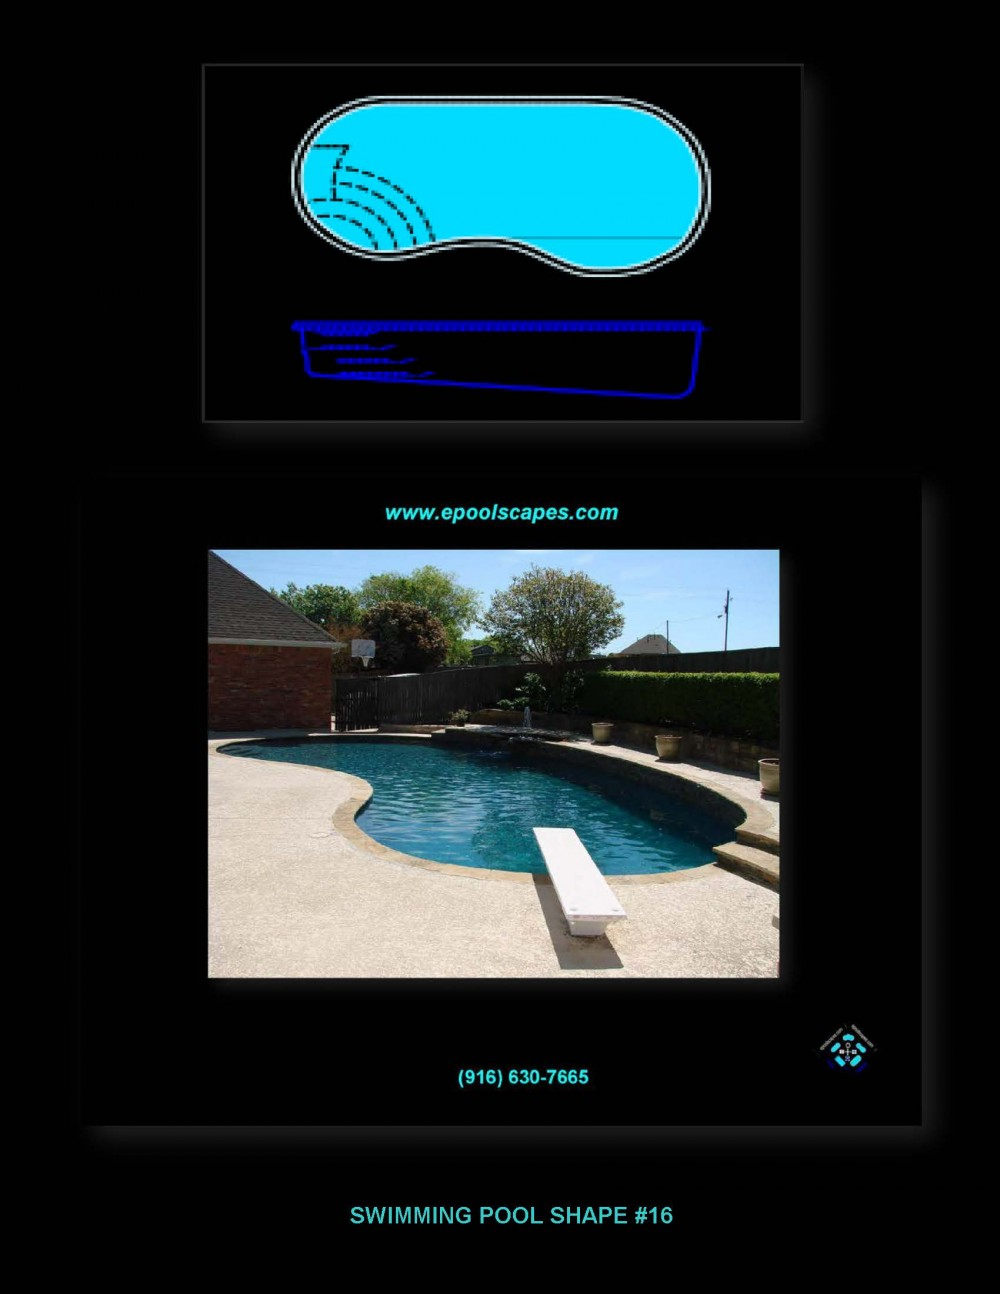 Pool Shape #16